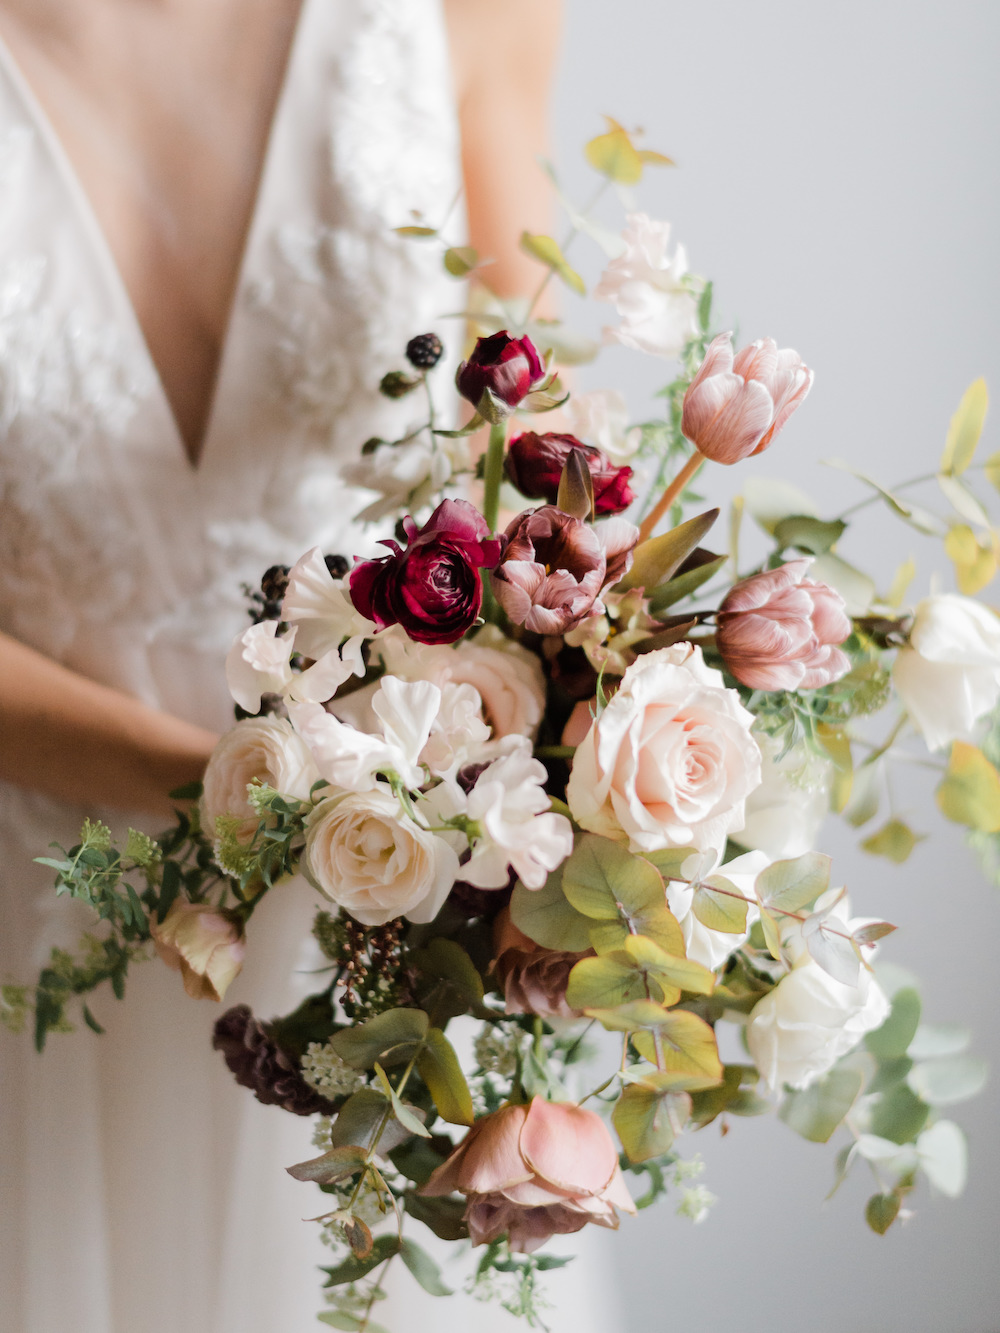 Burgundy, blush, cream bridal bouquet by Luster Floral Design at Sinclair and Moore Workshop, photo by Kristen Honeycutt Photo Co.jpg